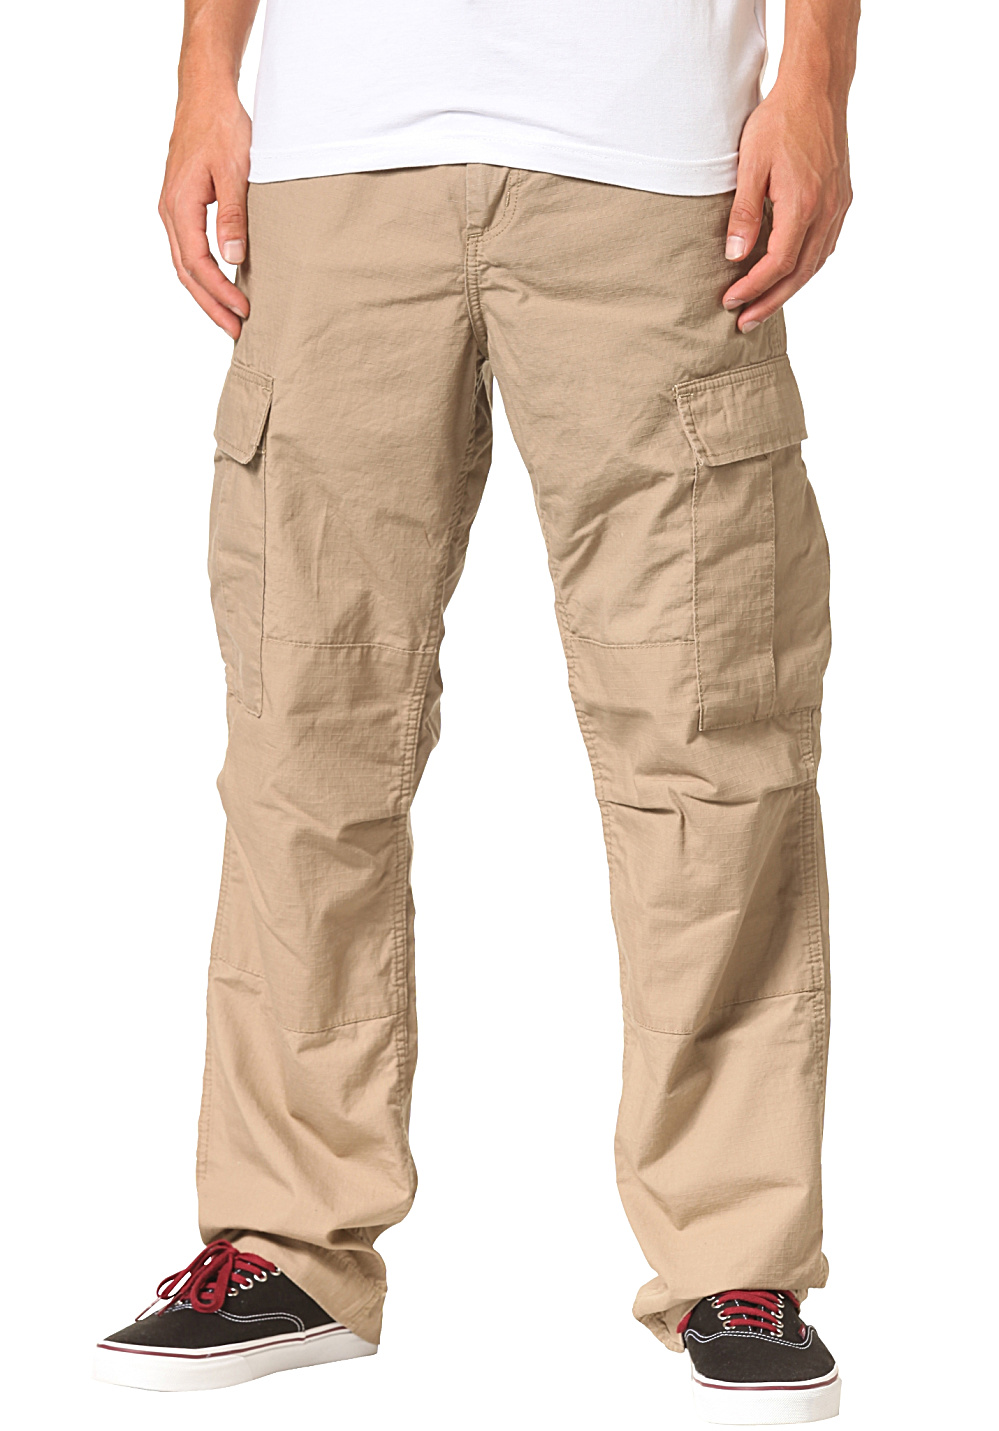 Relaxed seat and thighs Right-leg cargo pocket with cell-phone pocket Straight-leg openings Relaxed seat and thighs provide more mobility when you're wearing Carhartt Men's Rugged Cargo Pants. The right-leg cargo pocket sports cell-phone storage and a pen stall. Hidden metal snaps on the back /5(13).